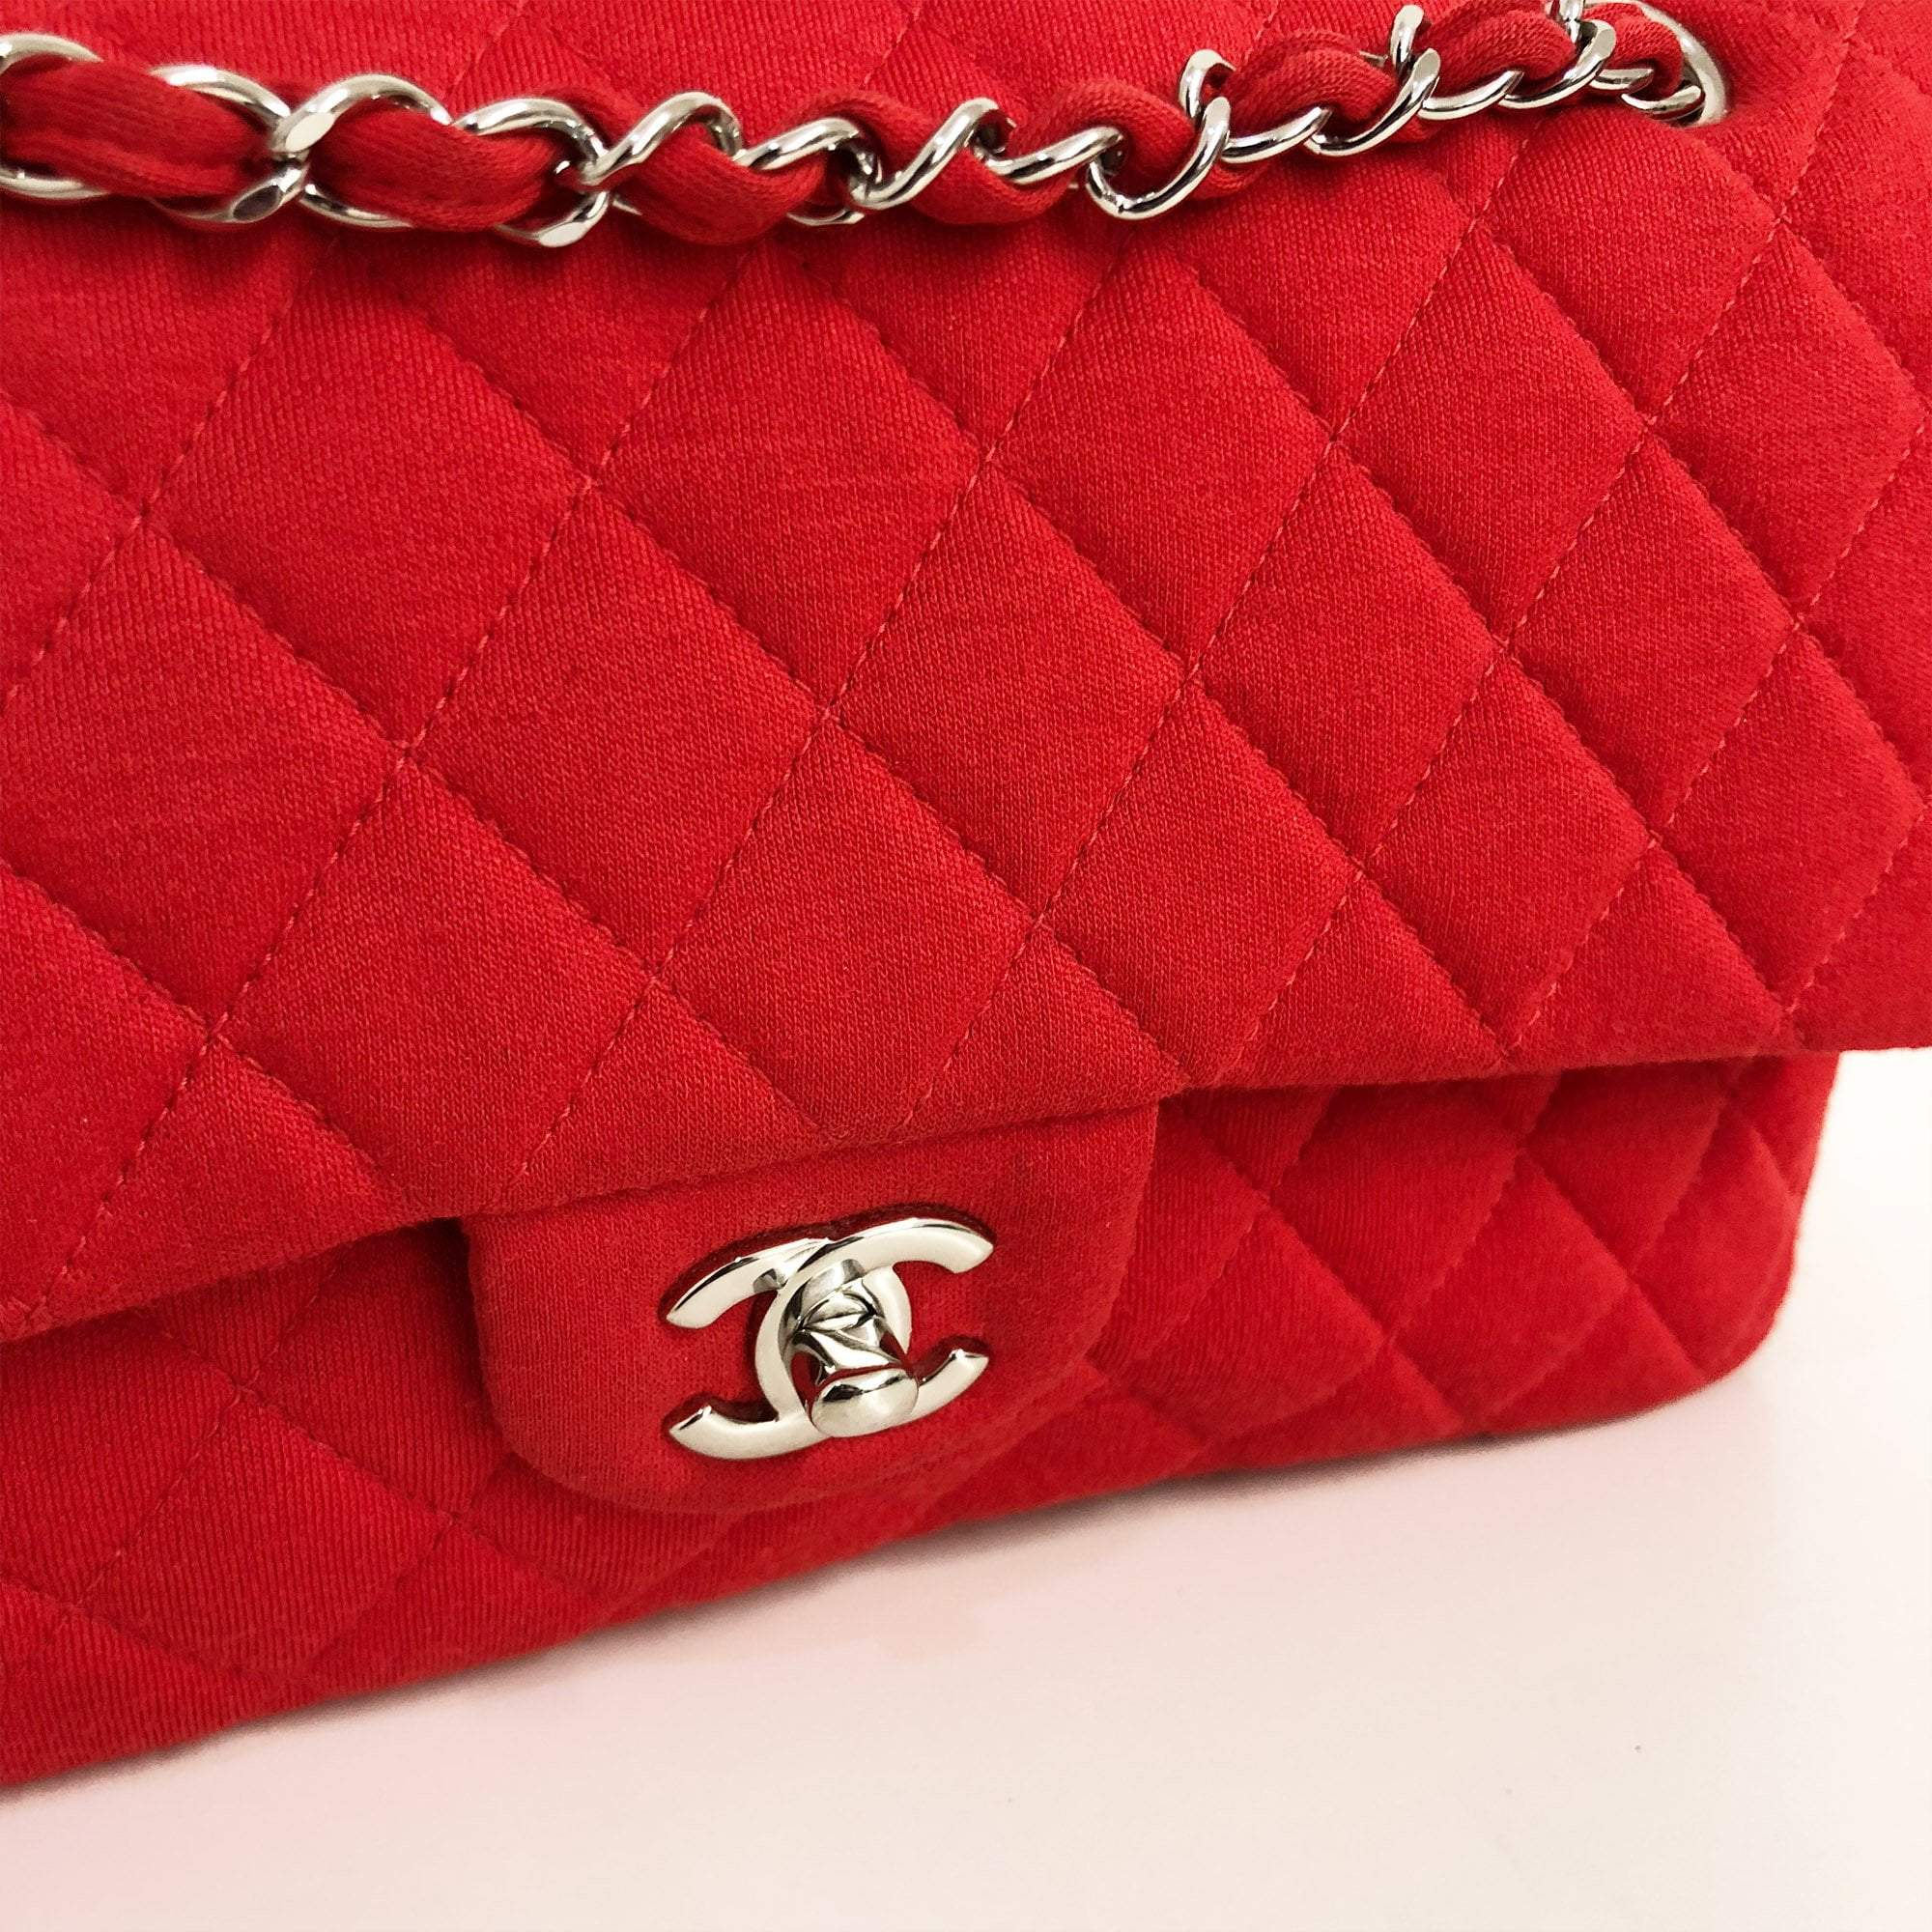 b0d2fe64d08c Chanel Red Quilted Jersey Medium Double Flap Bag – Garderobe